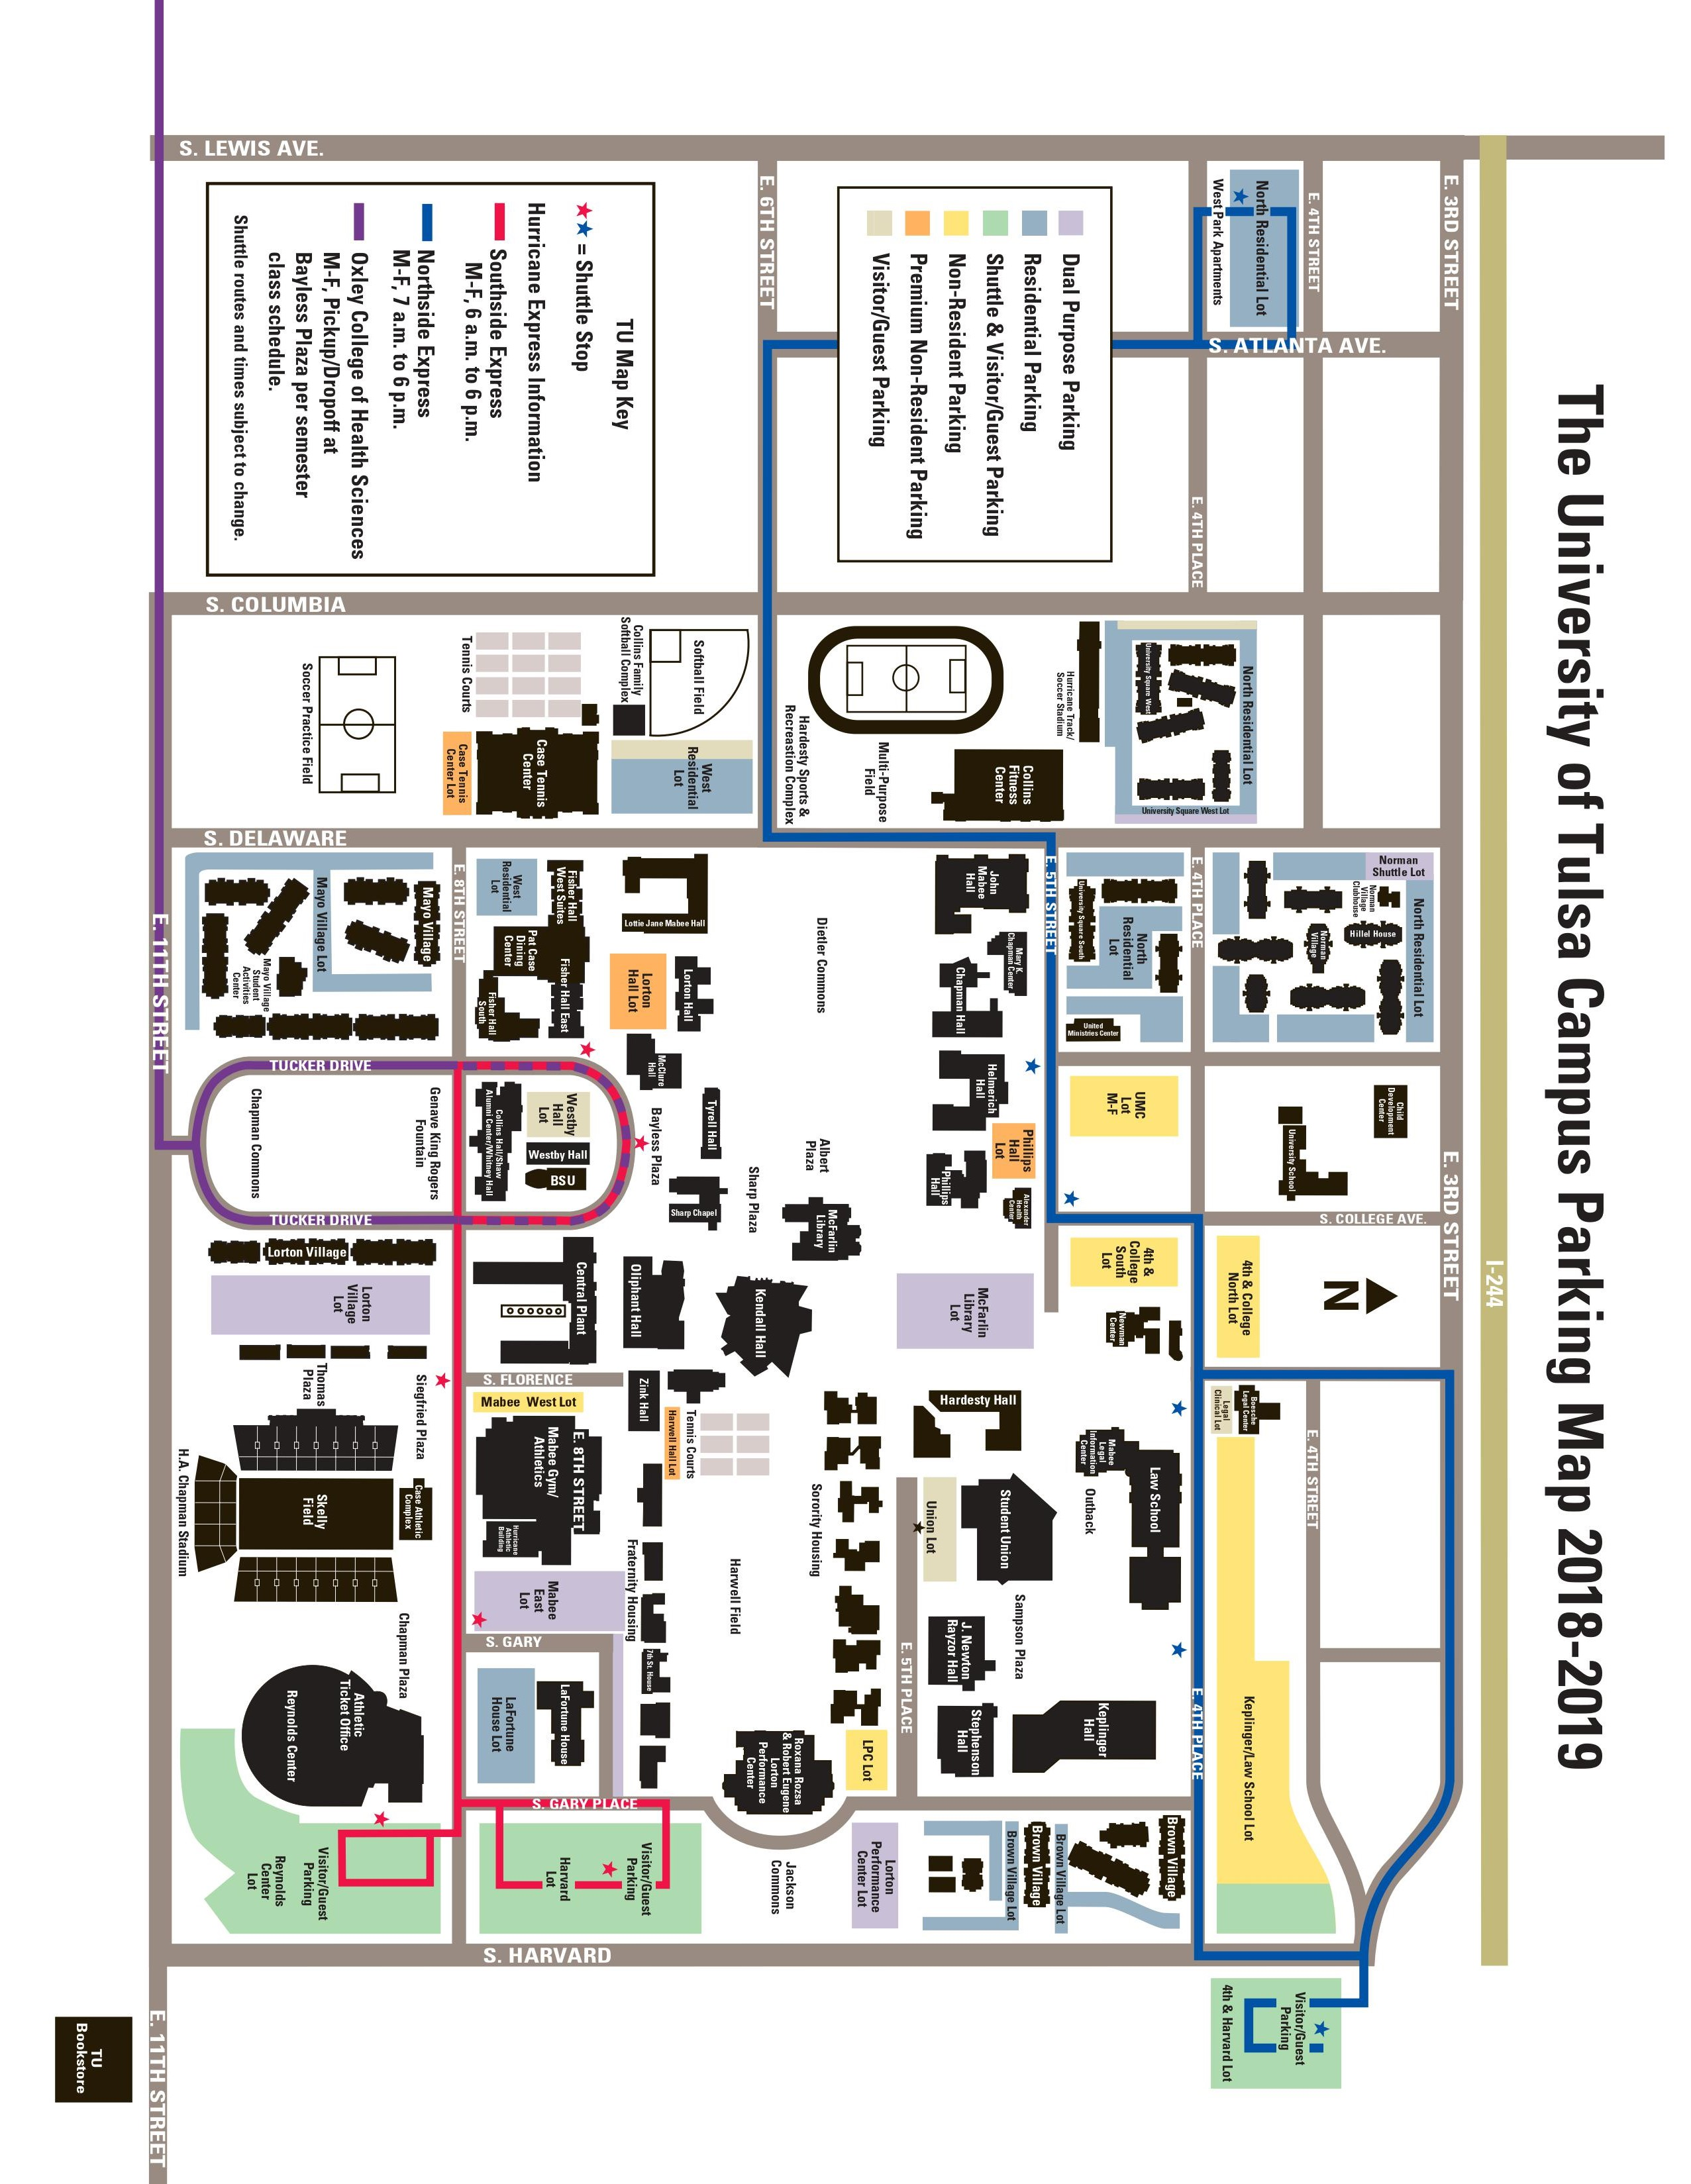 Campus Parking Map 2018-19